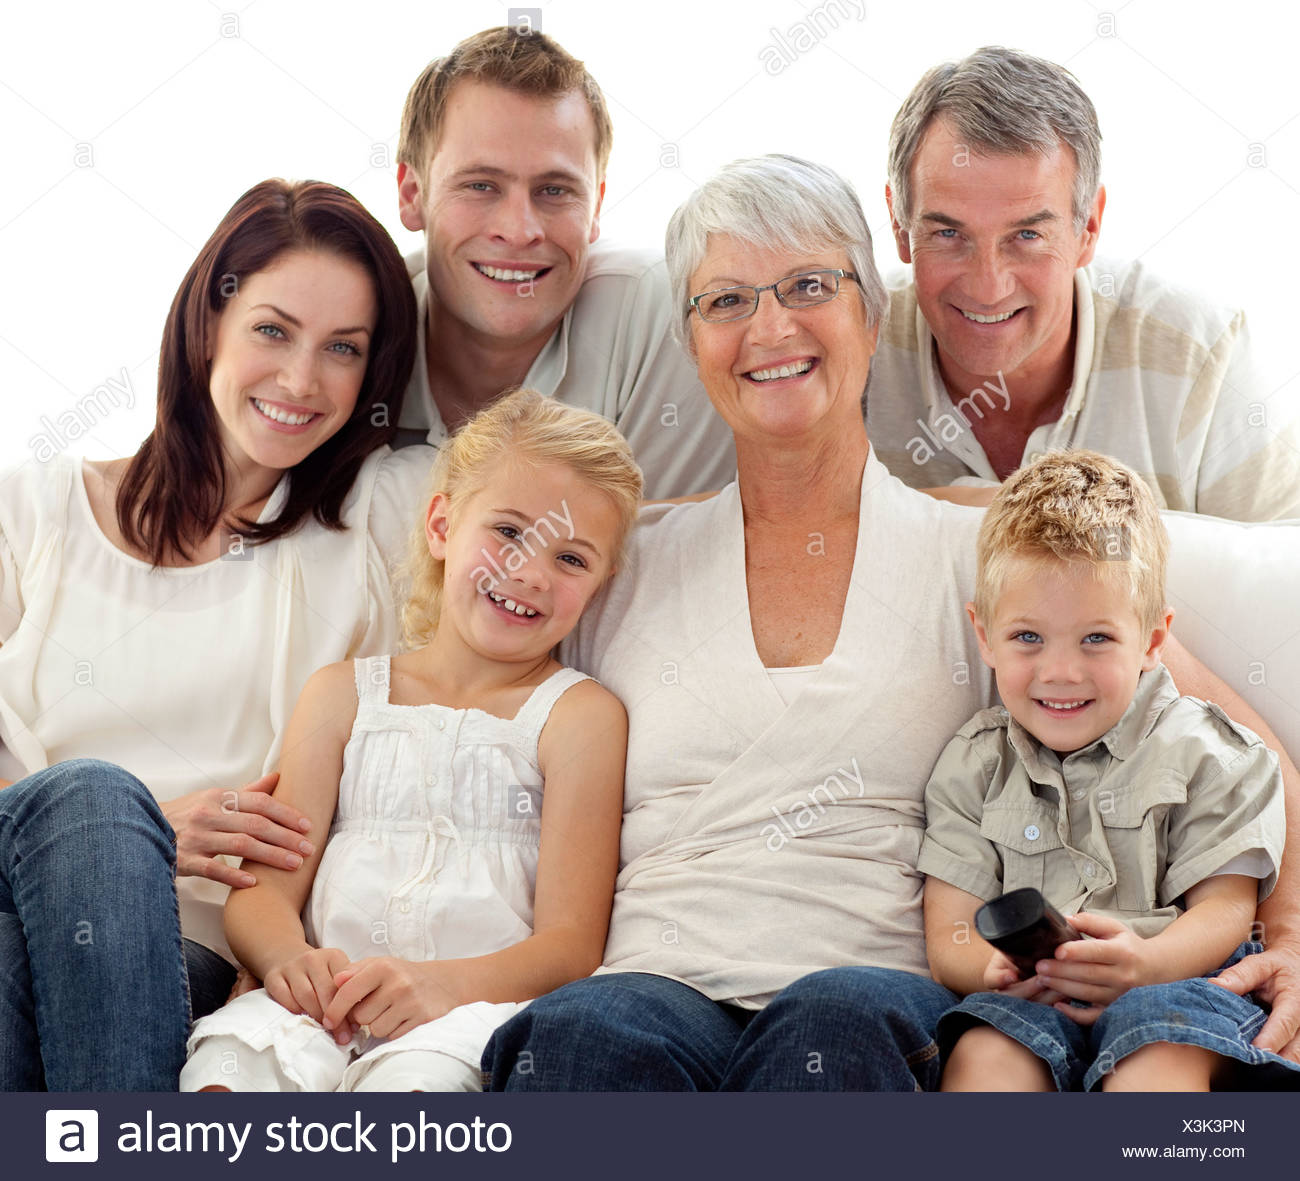 Family watching television at home - Stock Image